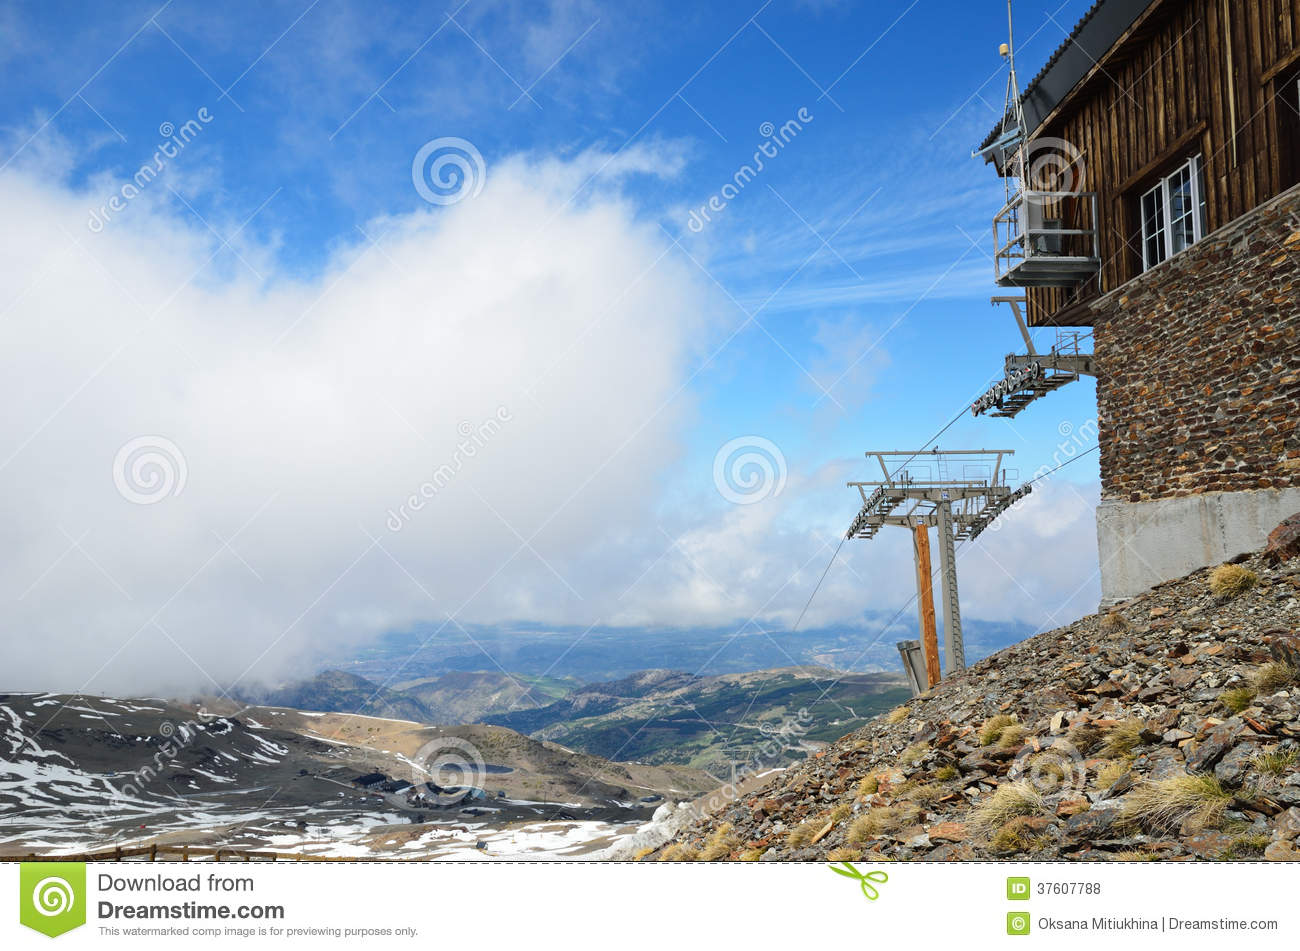 spring mountains in the andalusian sierra nevada stock photo - image